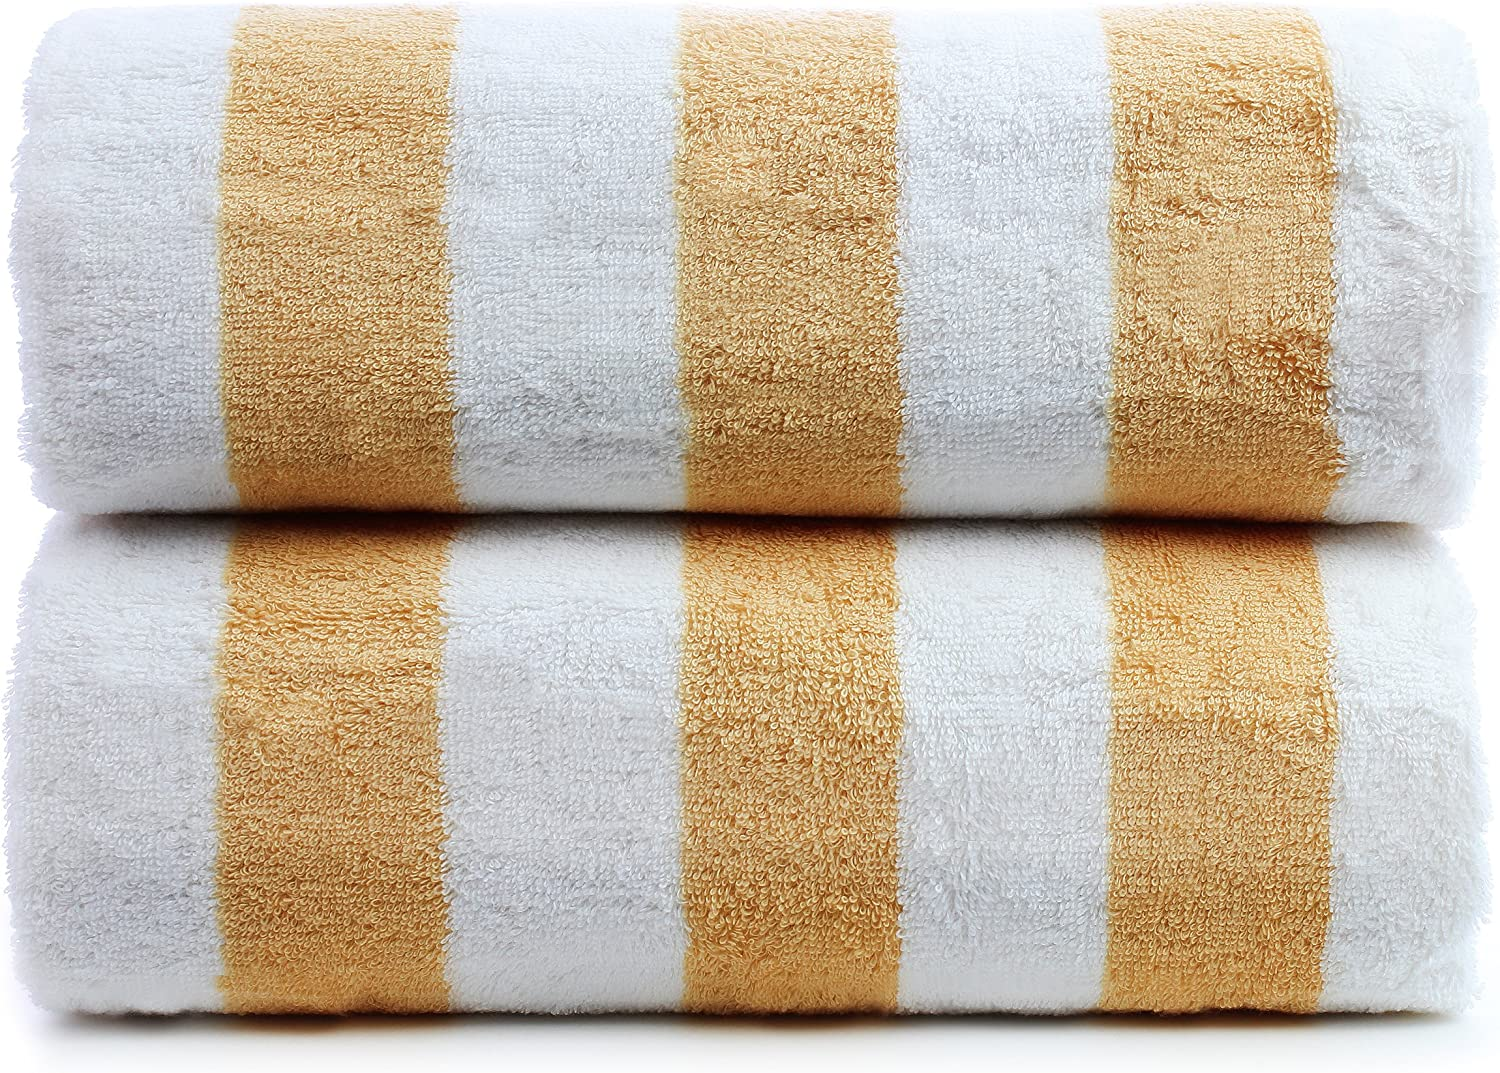 Yellow, 30x60 Inch Premium Quality 100/% Turkish Cotton Cabana Thick Stripe 2-Pack Pool Beach Towels Eco-Friendly